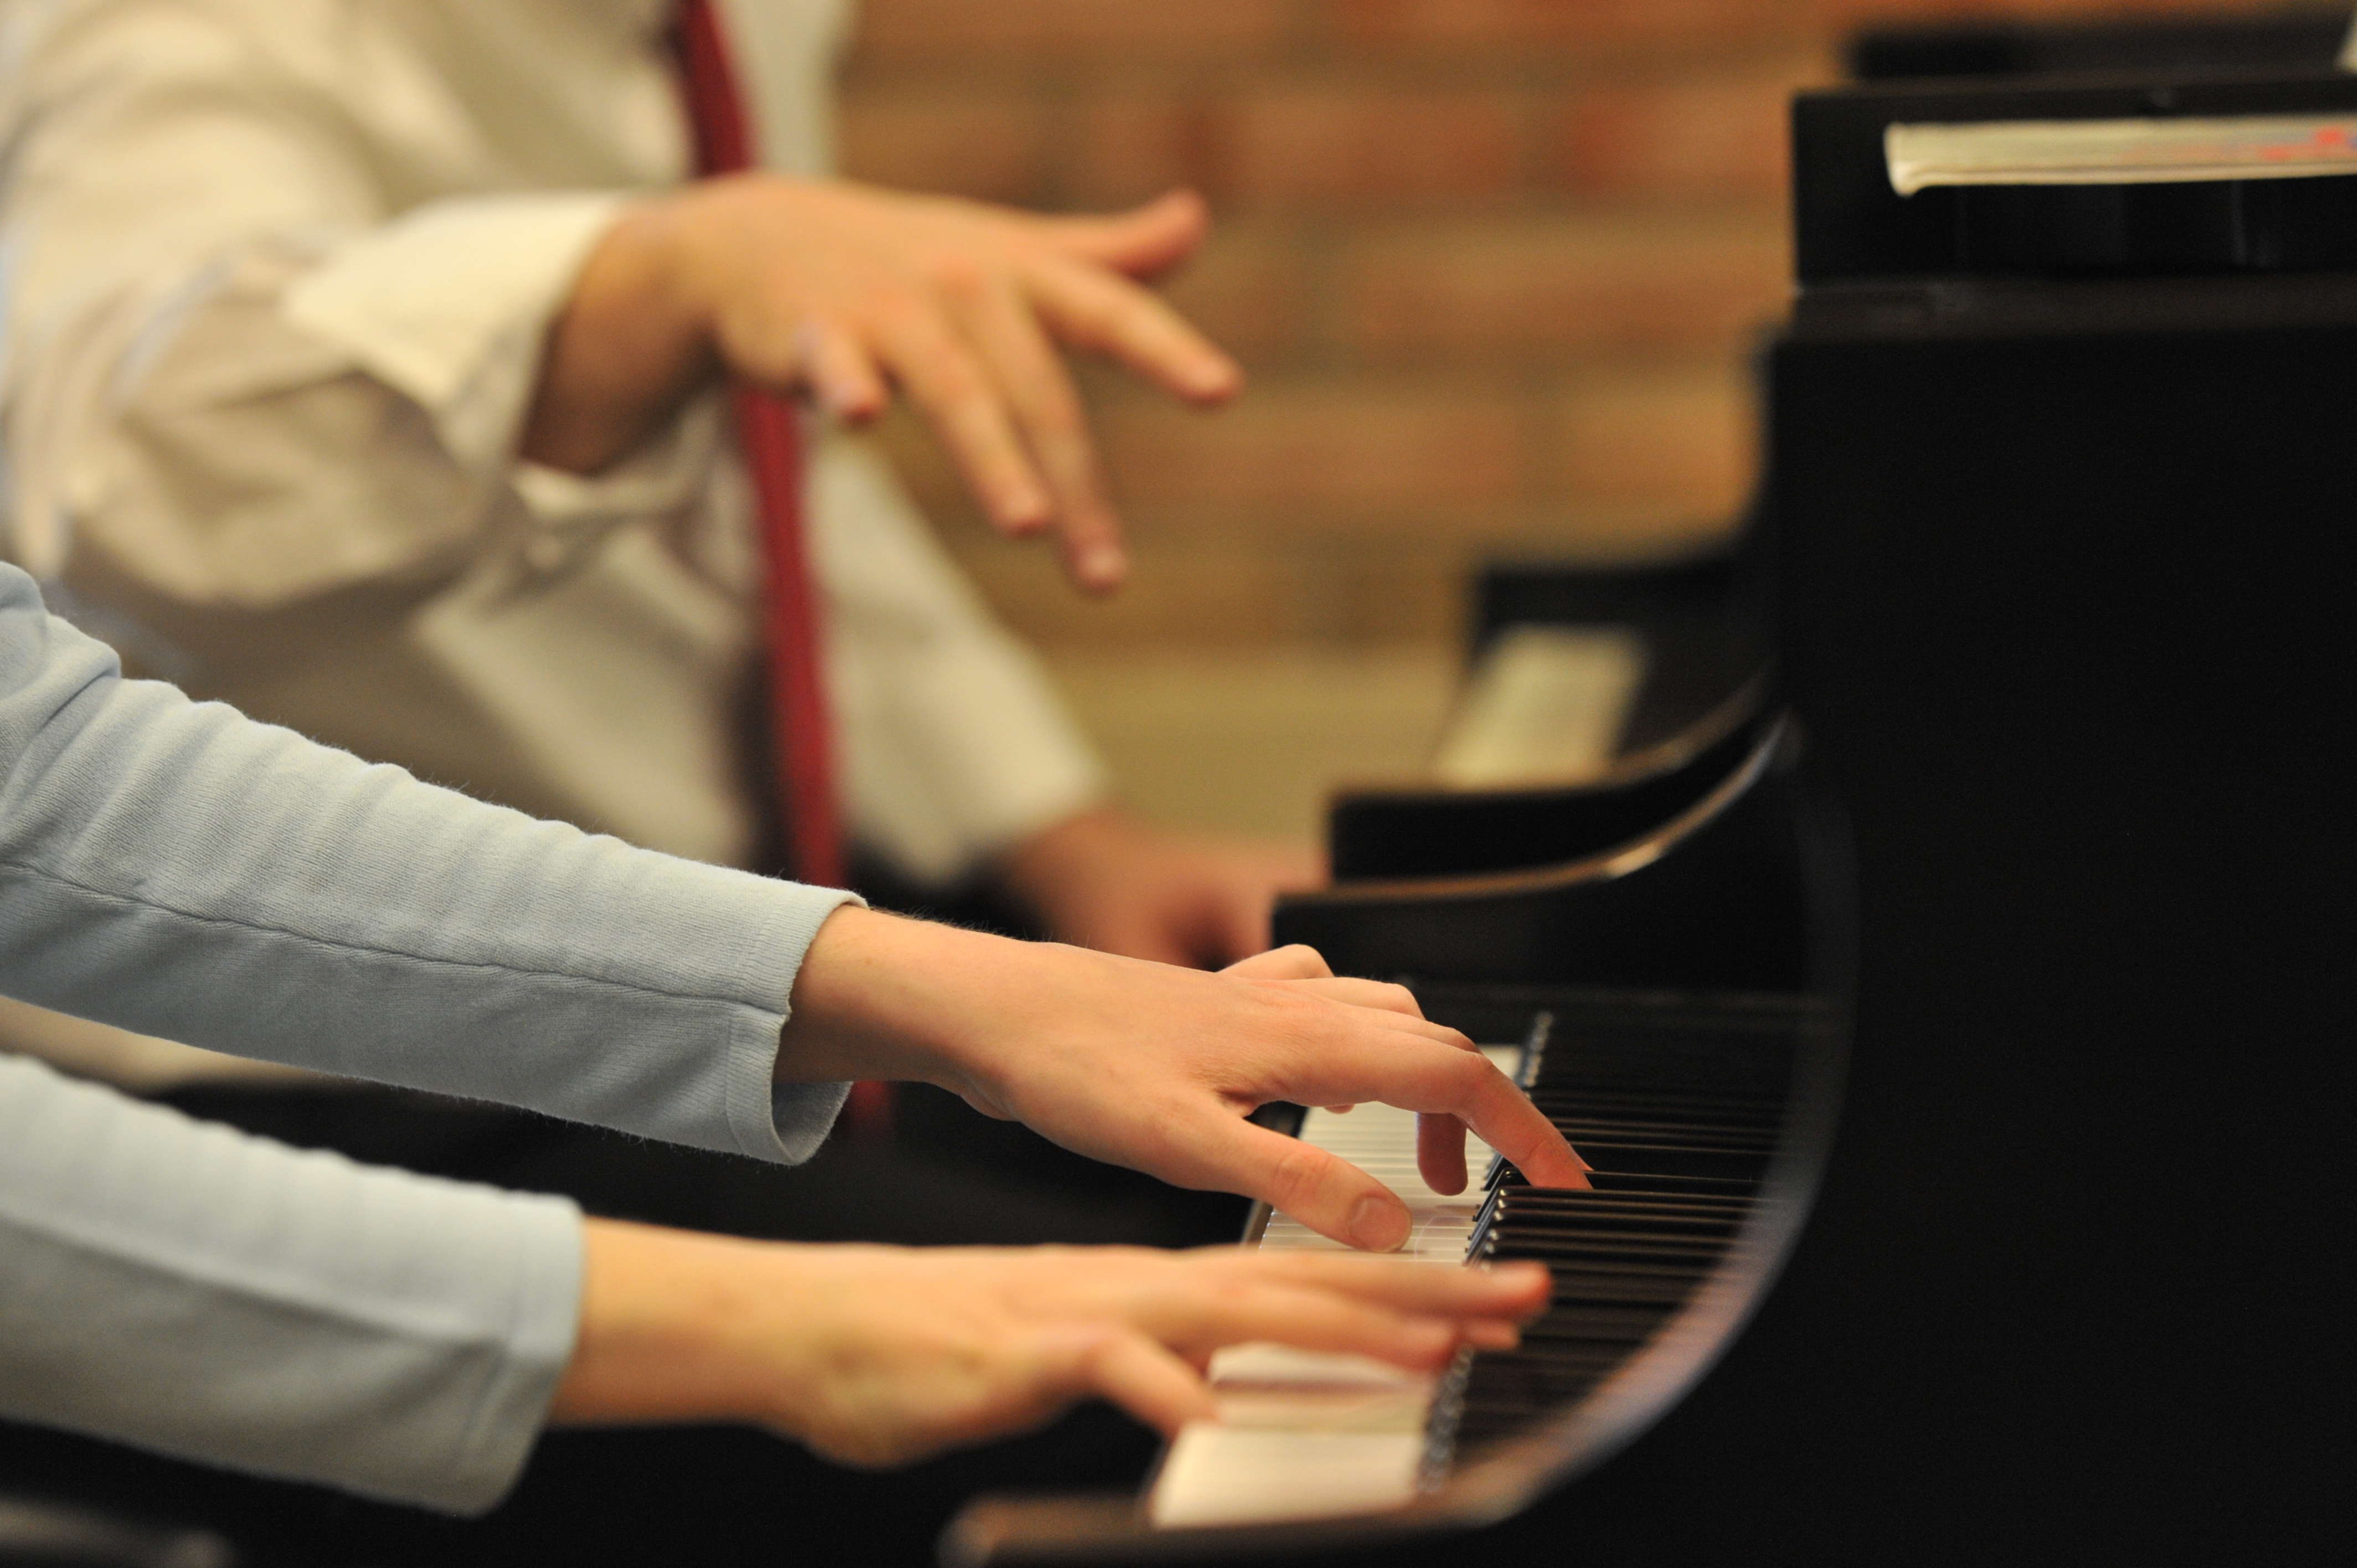 Hands on a piano. Image credit: Peter Smith, courtesy School of Music, Theatre & Dance